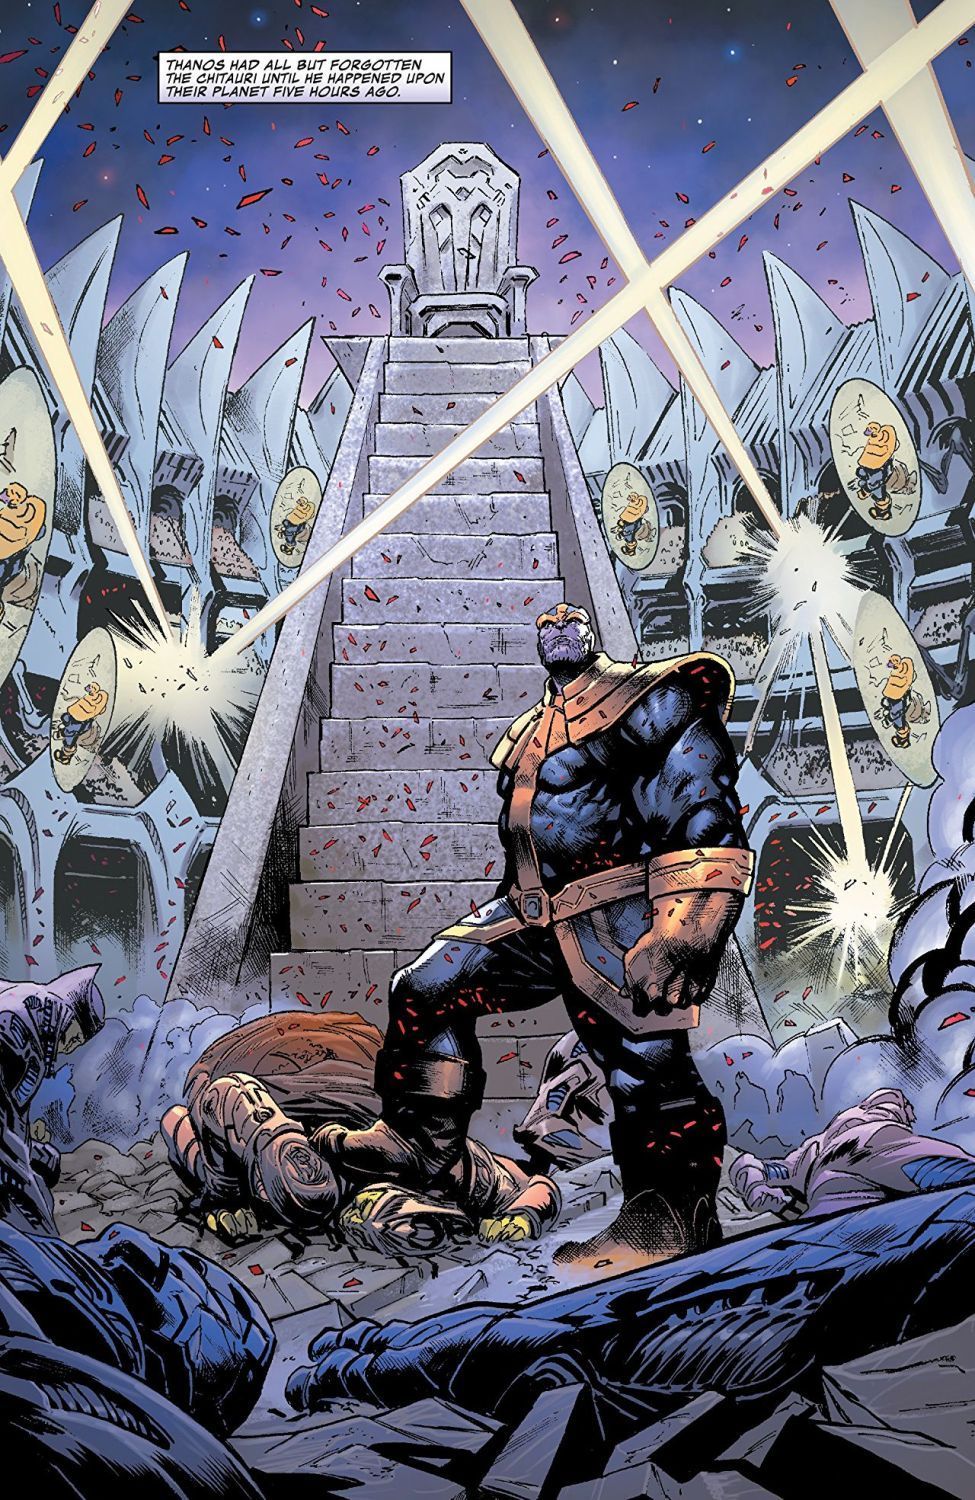 Thanos Wins by Donny Cates-3 - 4